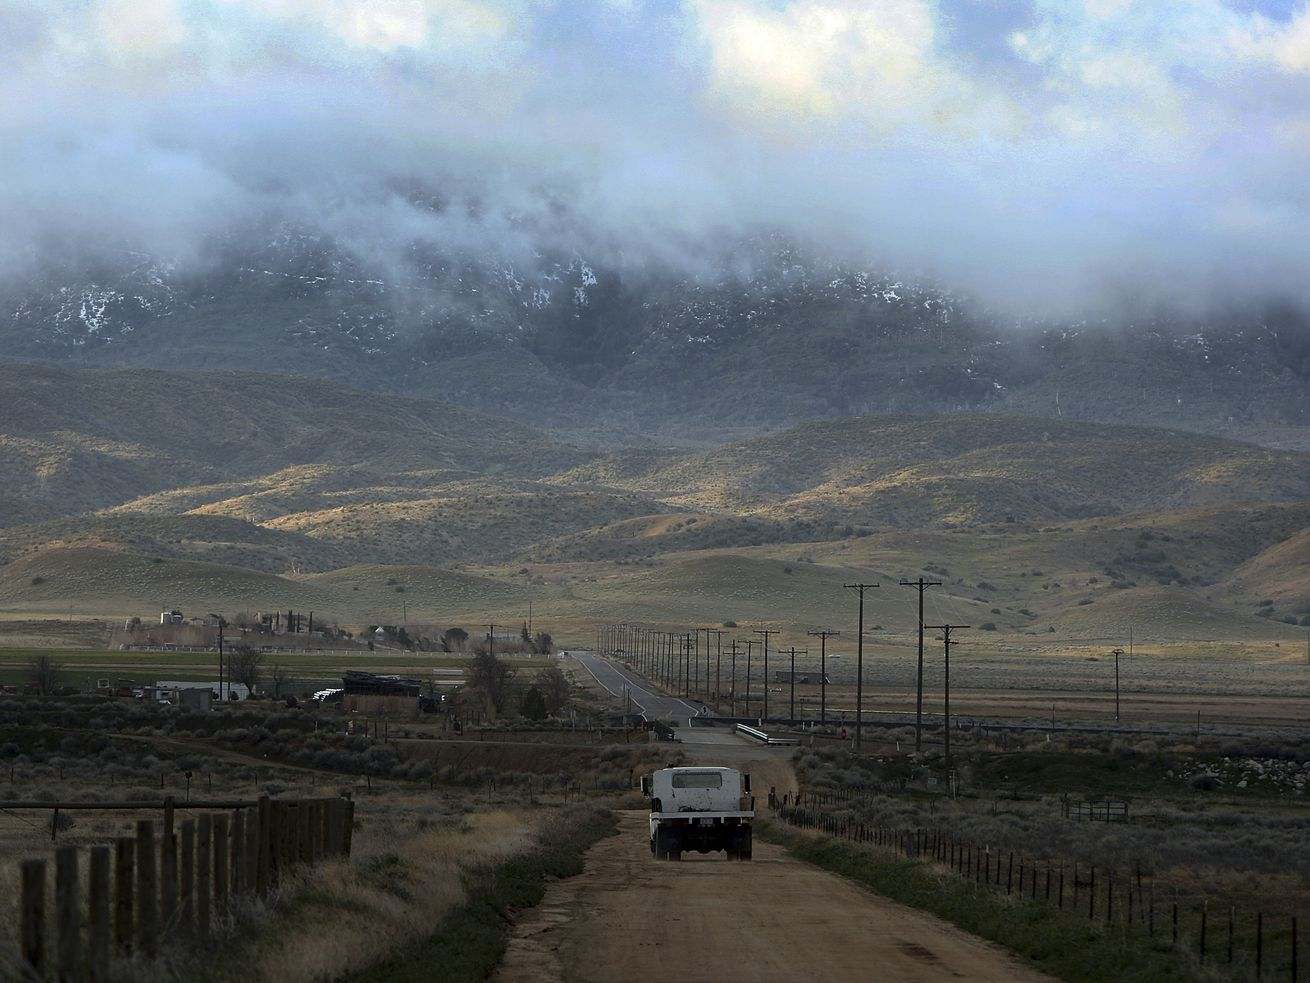 The Centennial community will be constructed over two decades on 12,000 acres of land at Tejon Ranch.